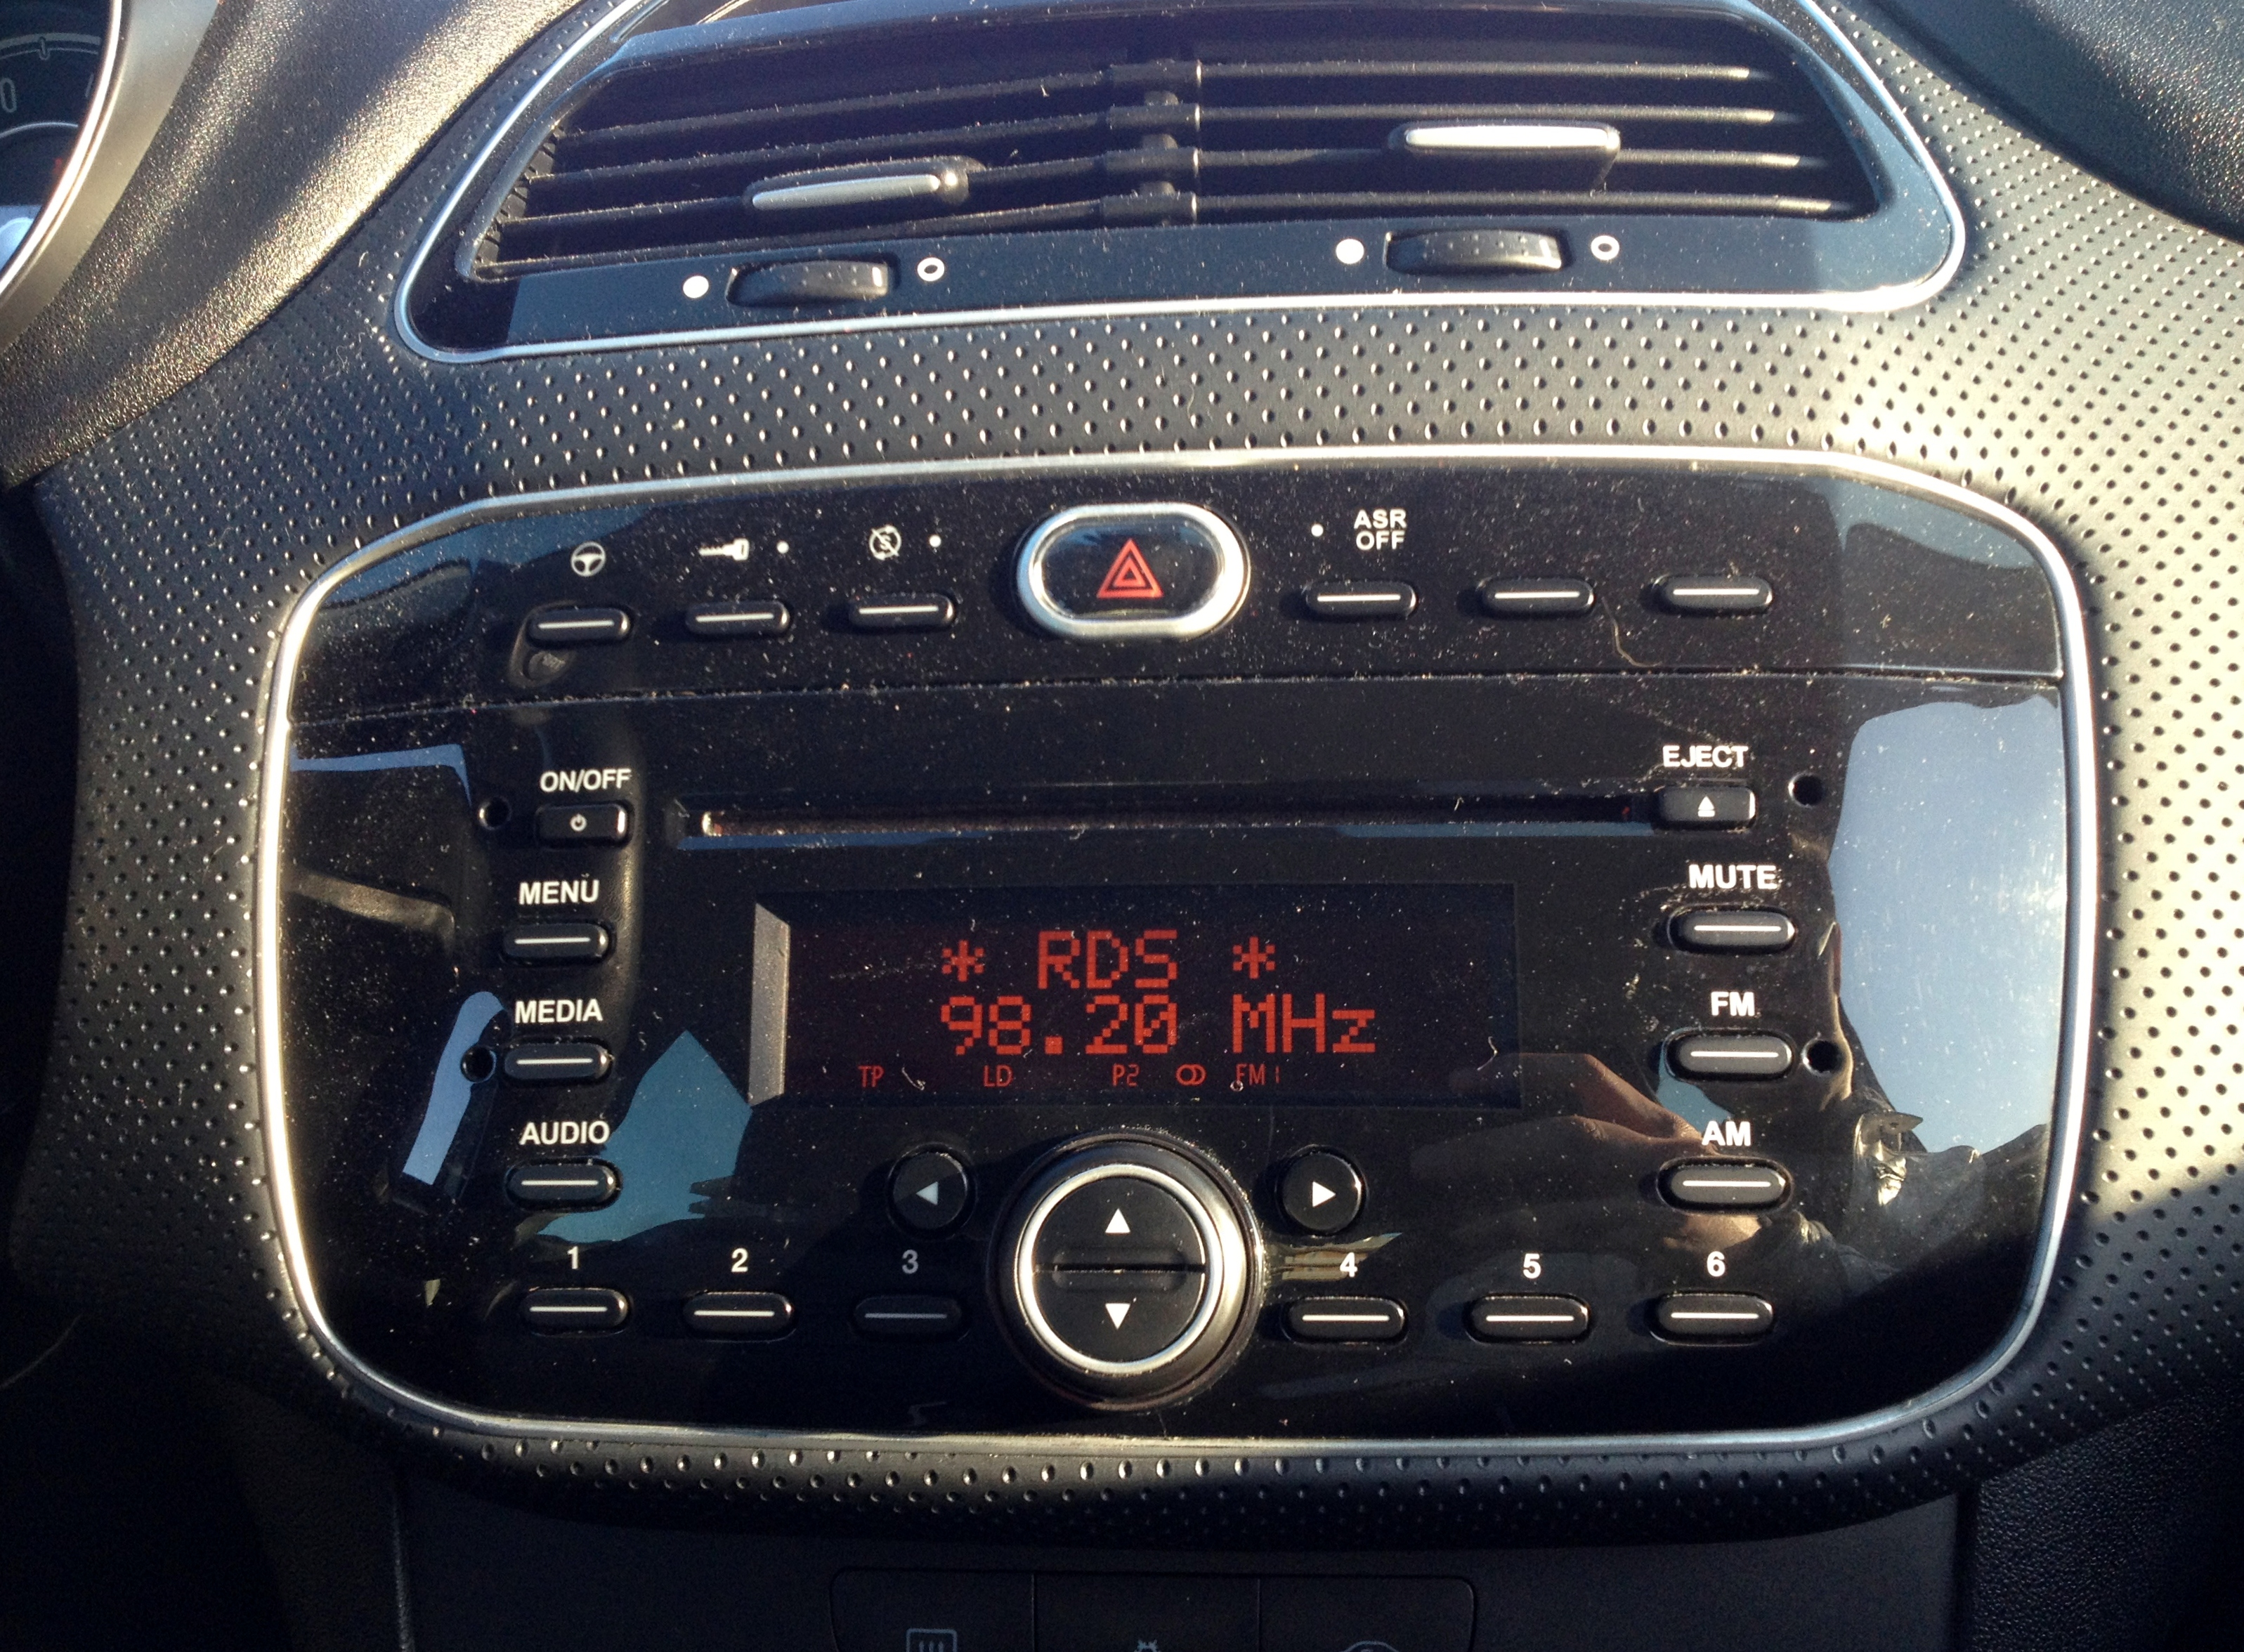 File 2012 Fiat Punto Evo 1 2 Autoradio on sony touch screen radio